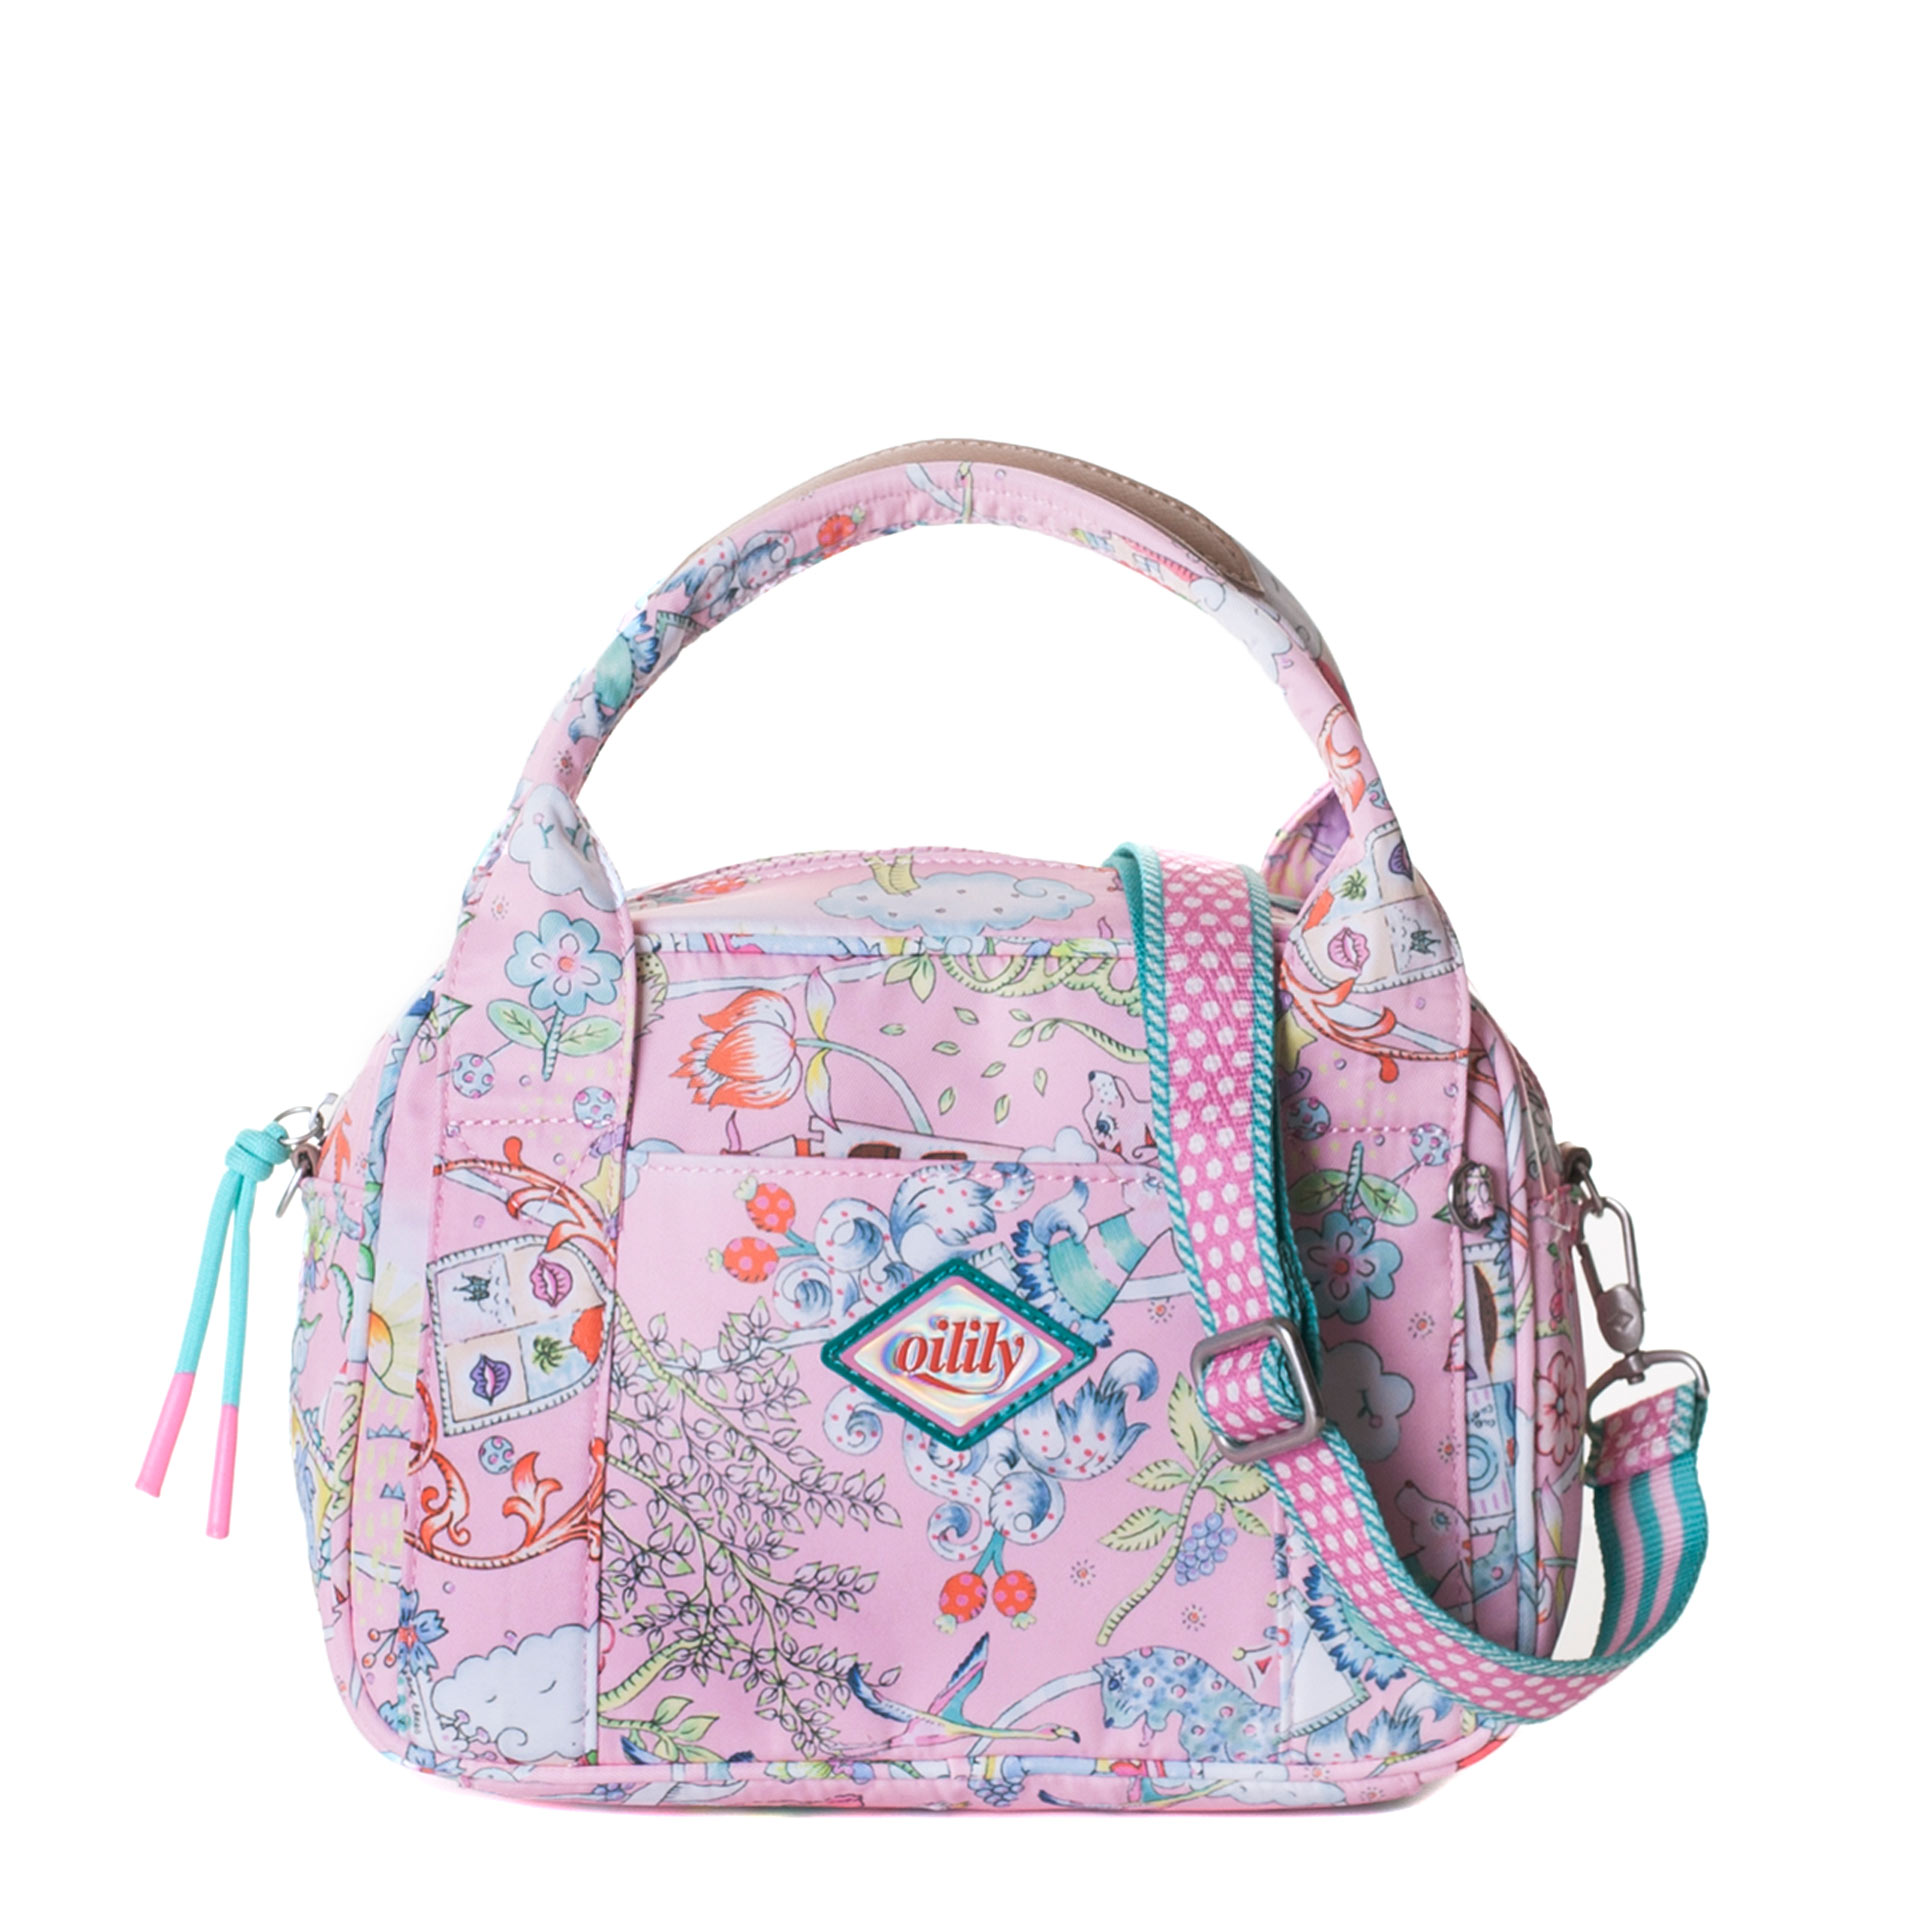 Oilily Castle in the Clouds Handtasche rose shadow